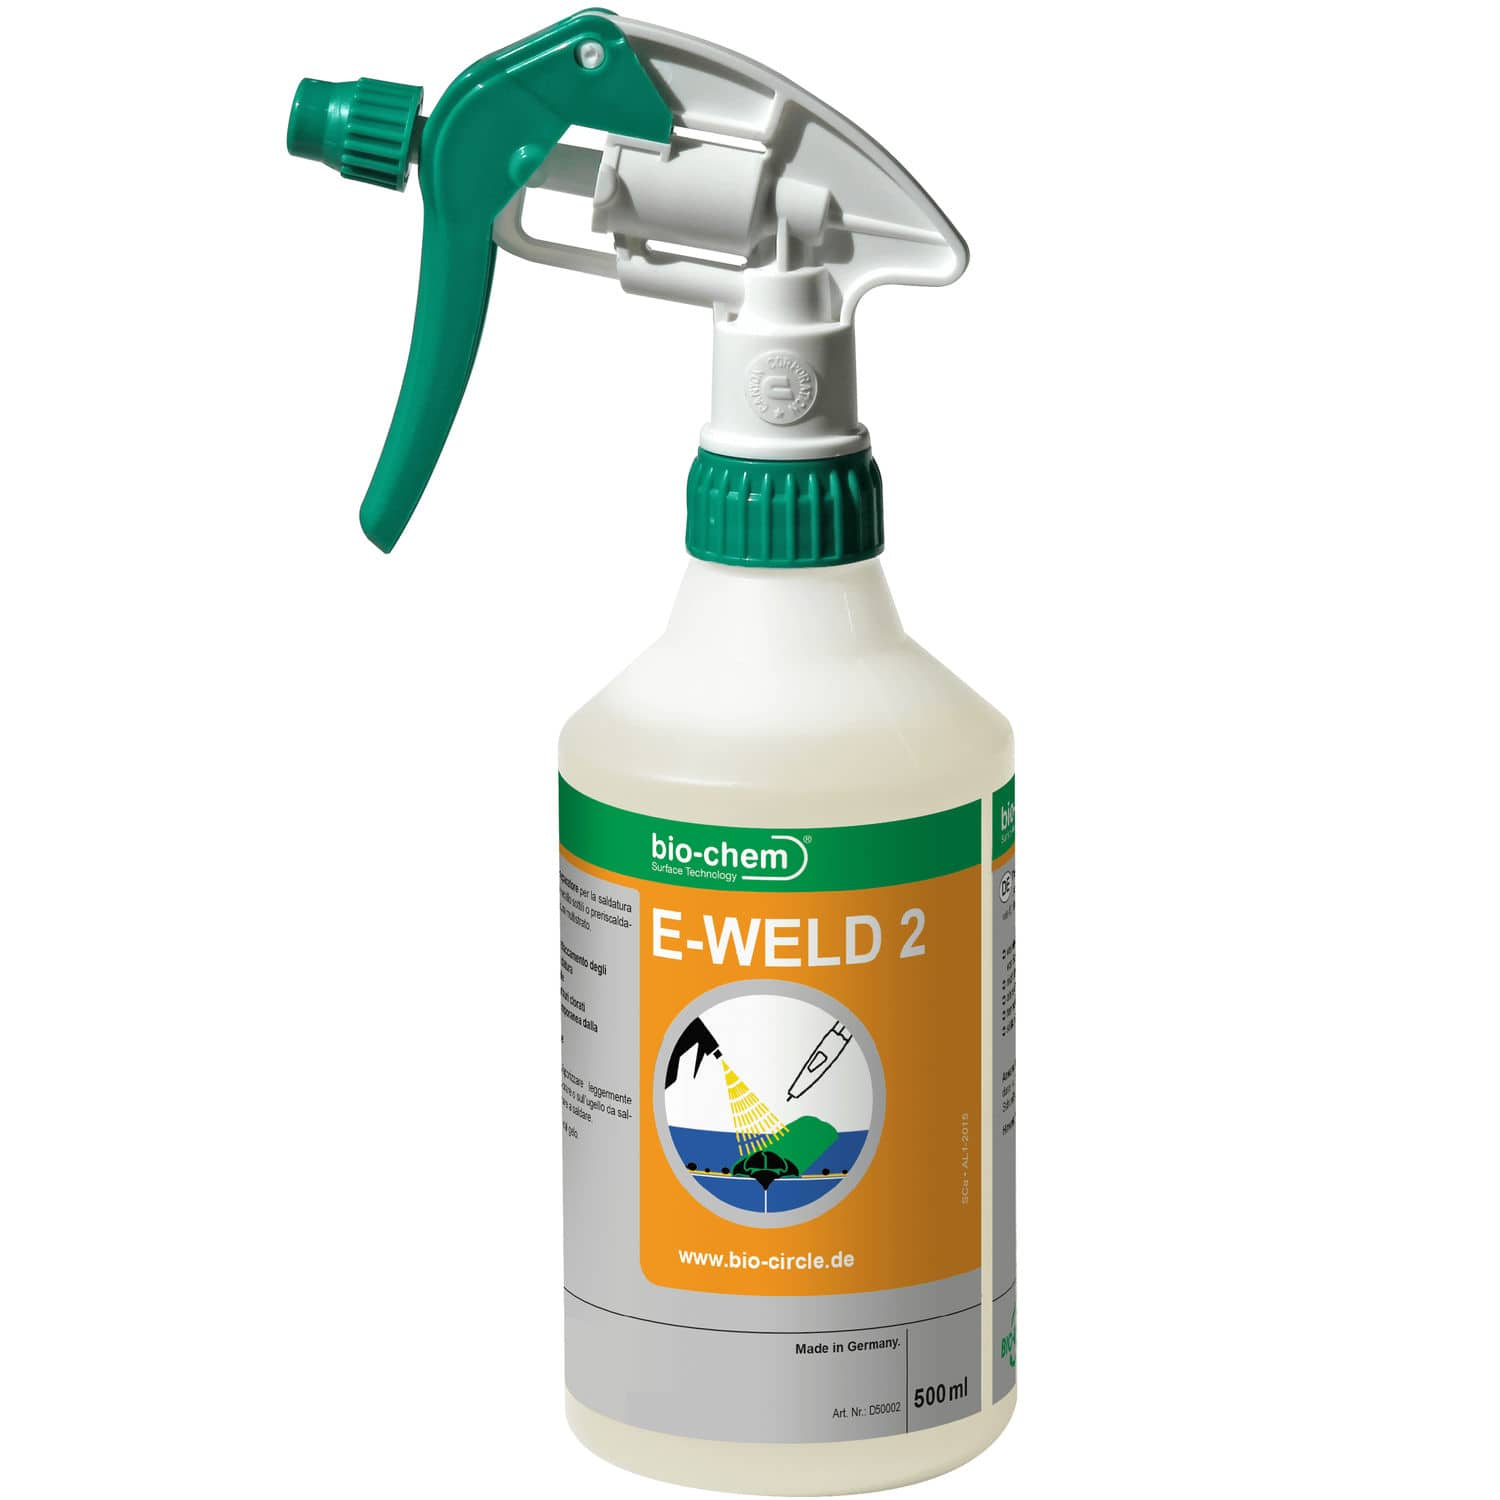 Cleaning spray / corrosion protection / with galvanizing compound